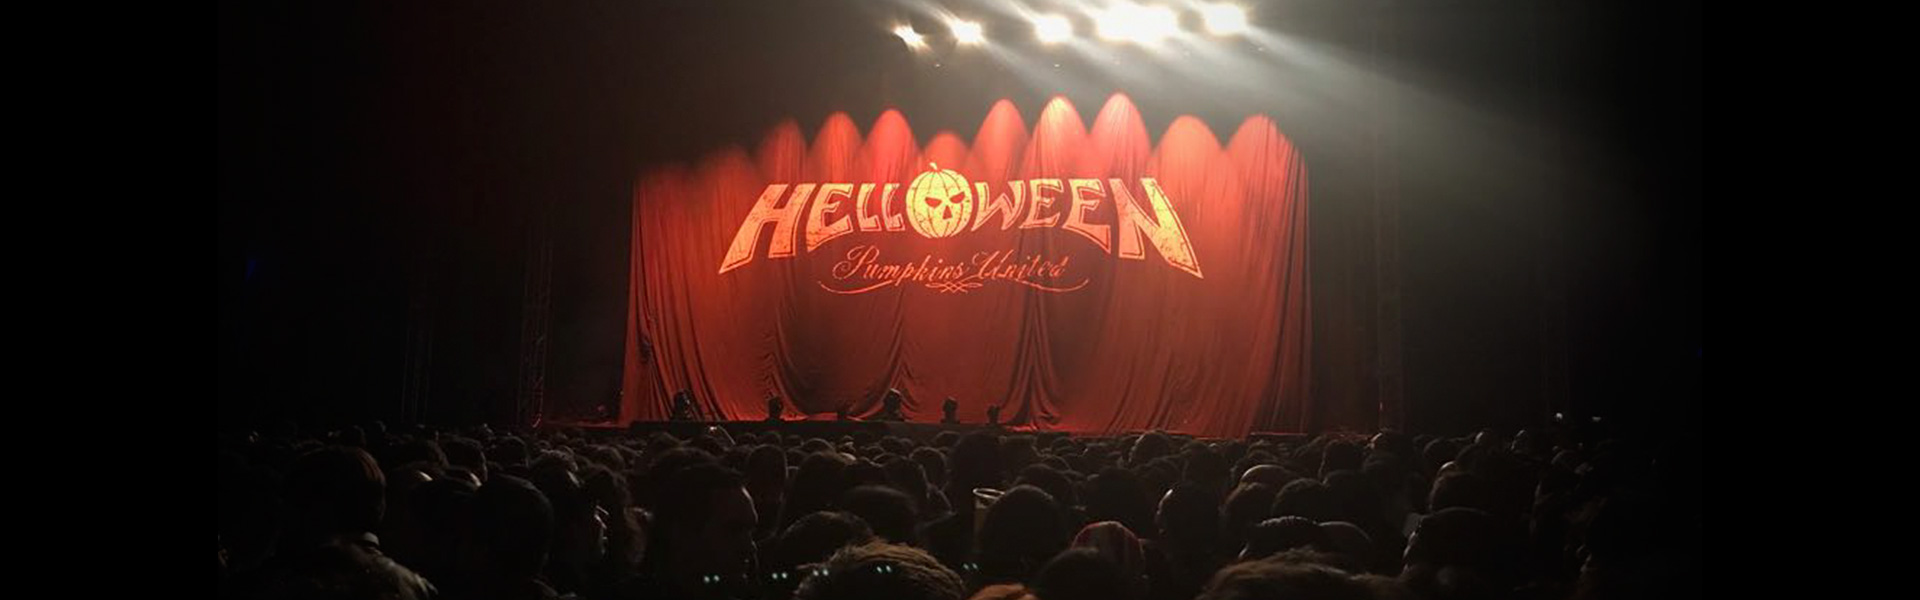 vinilo helloween live in the uk